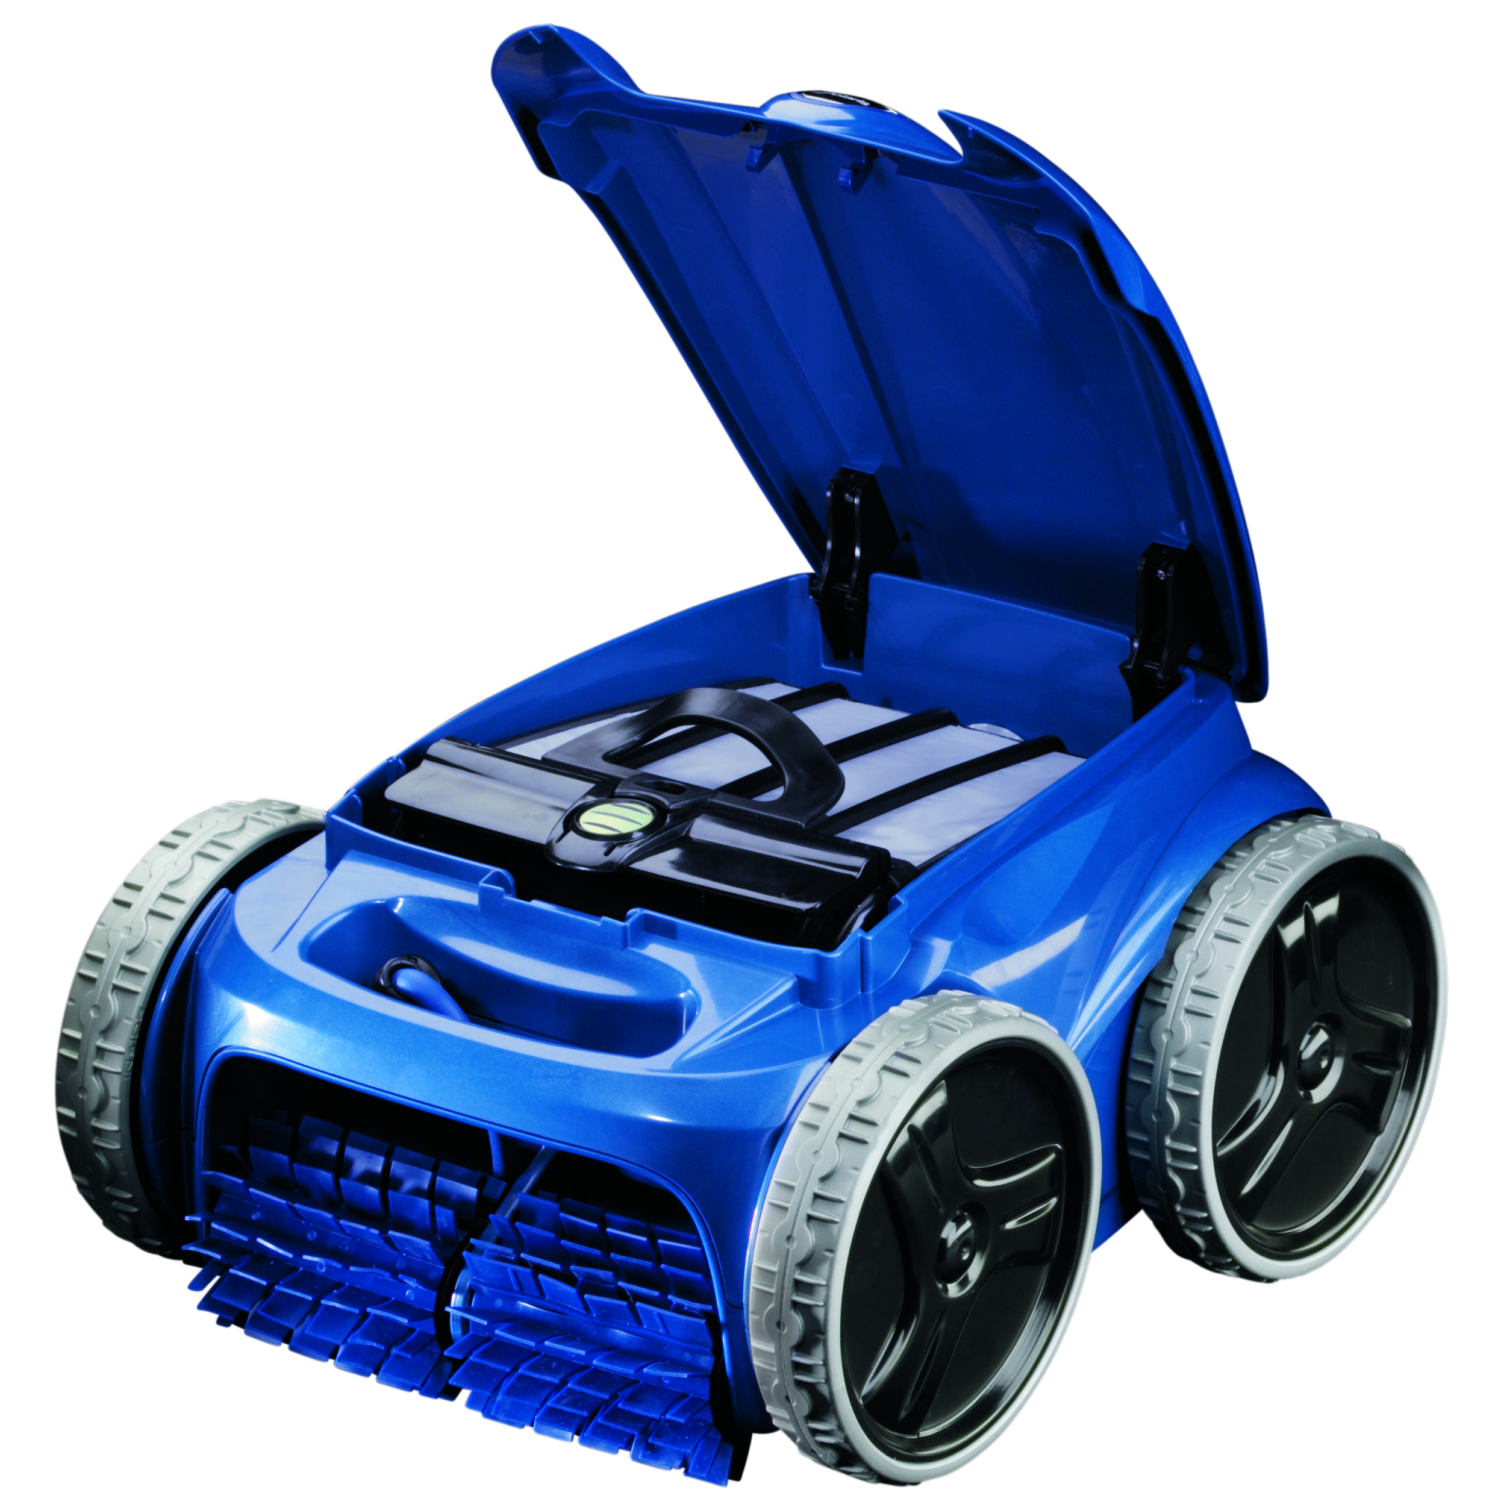 Polaris 9400 1 Swimming Pool Cleaner Worldwide Polaris Automatic Pool Cleaners